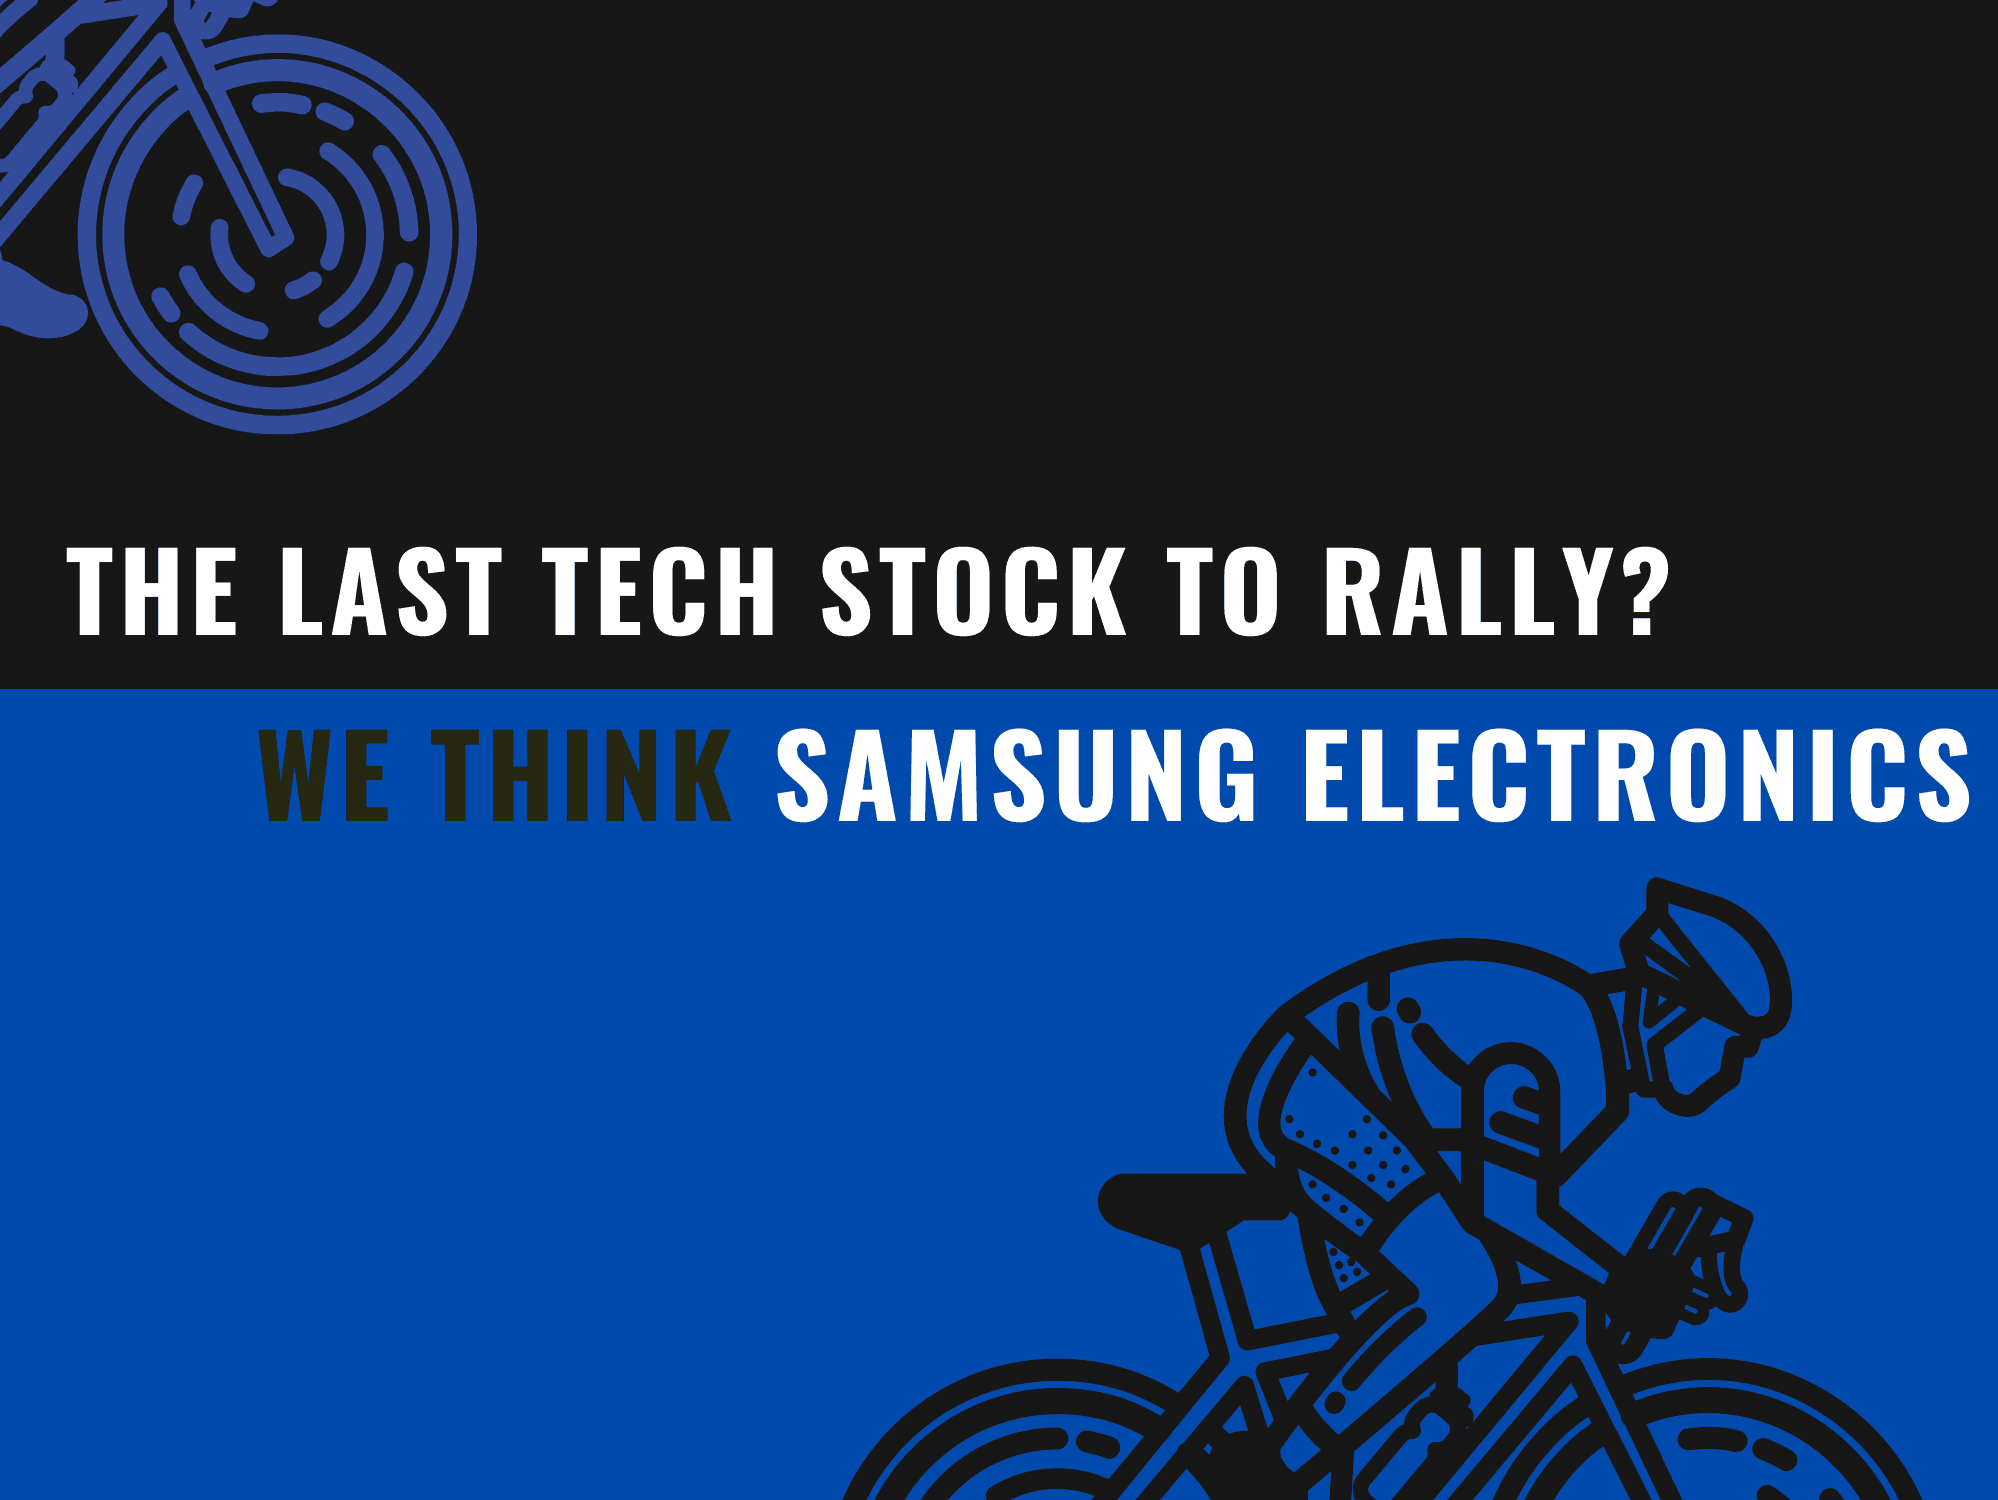 Last Tech Stock to Rally? We think it could be Samsung Electronics